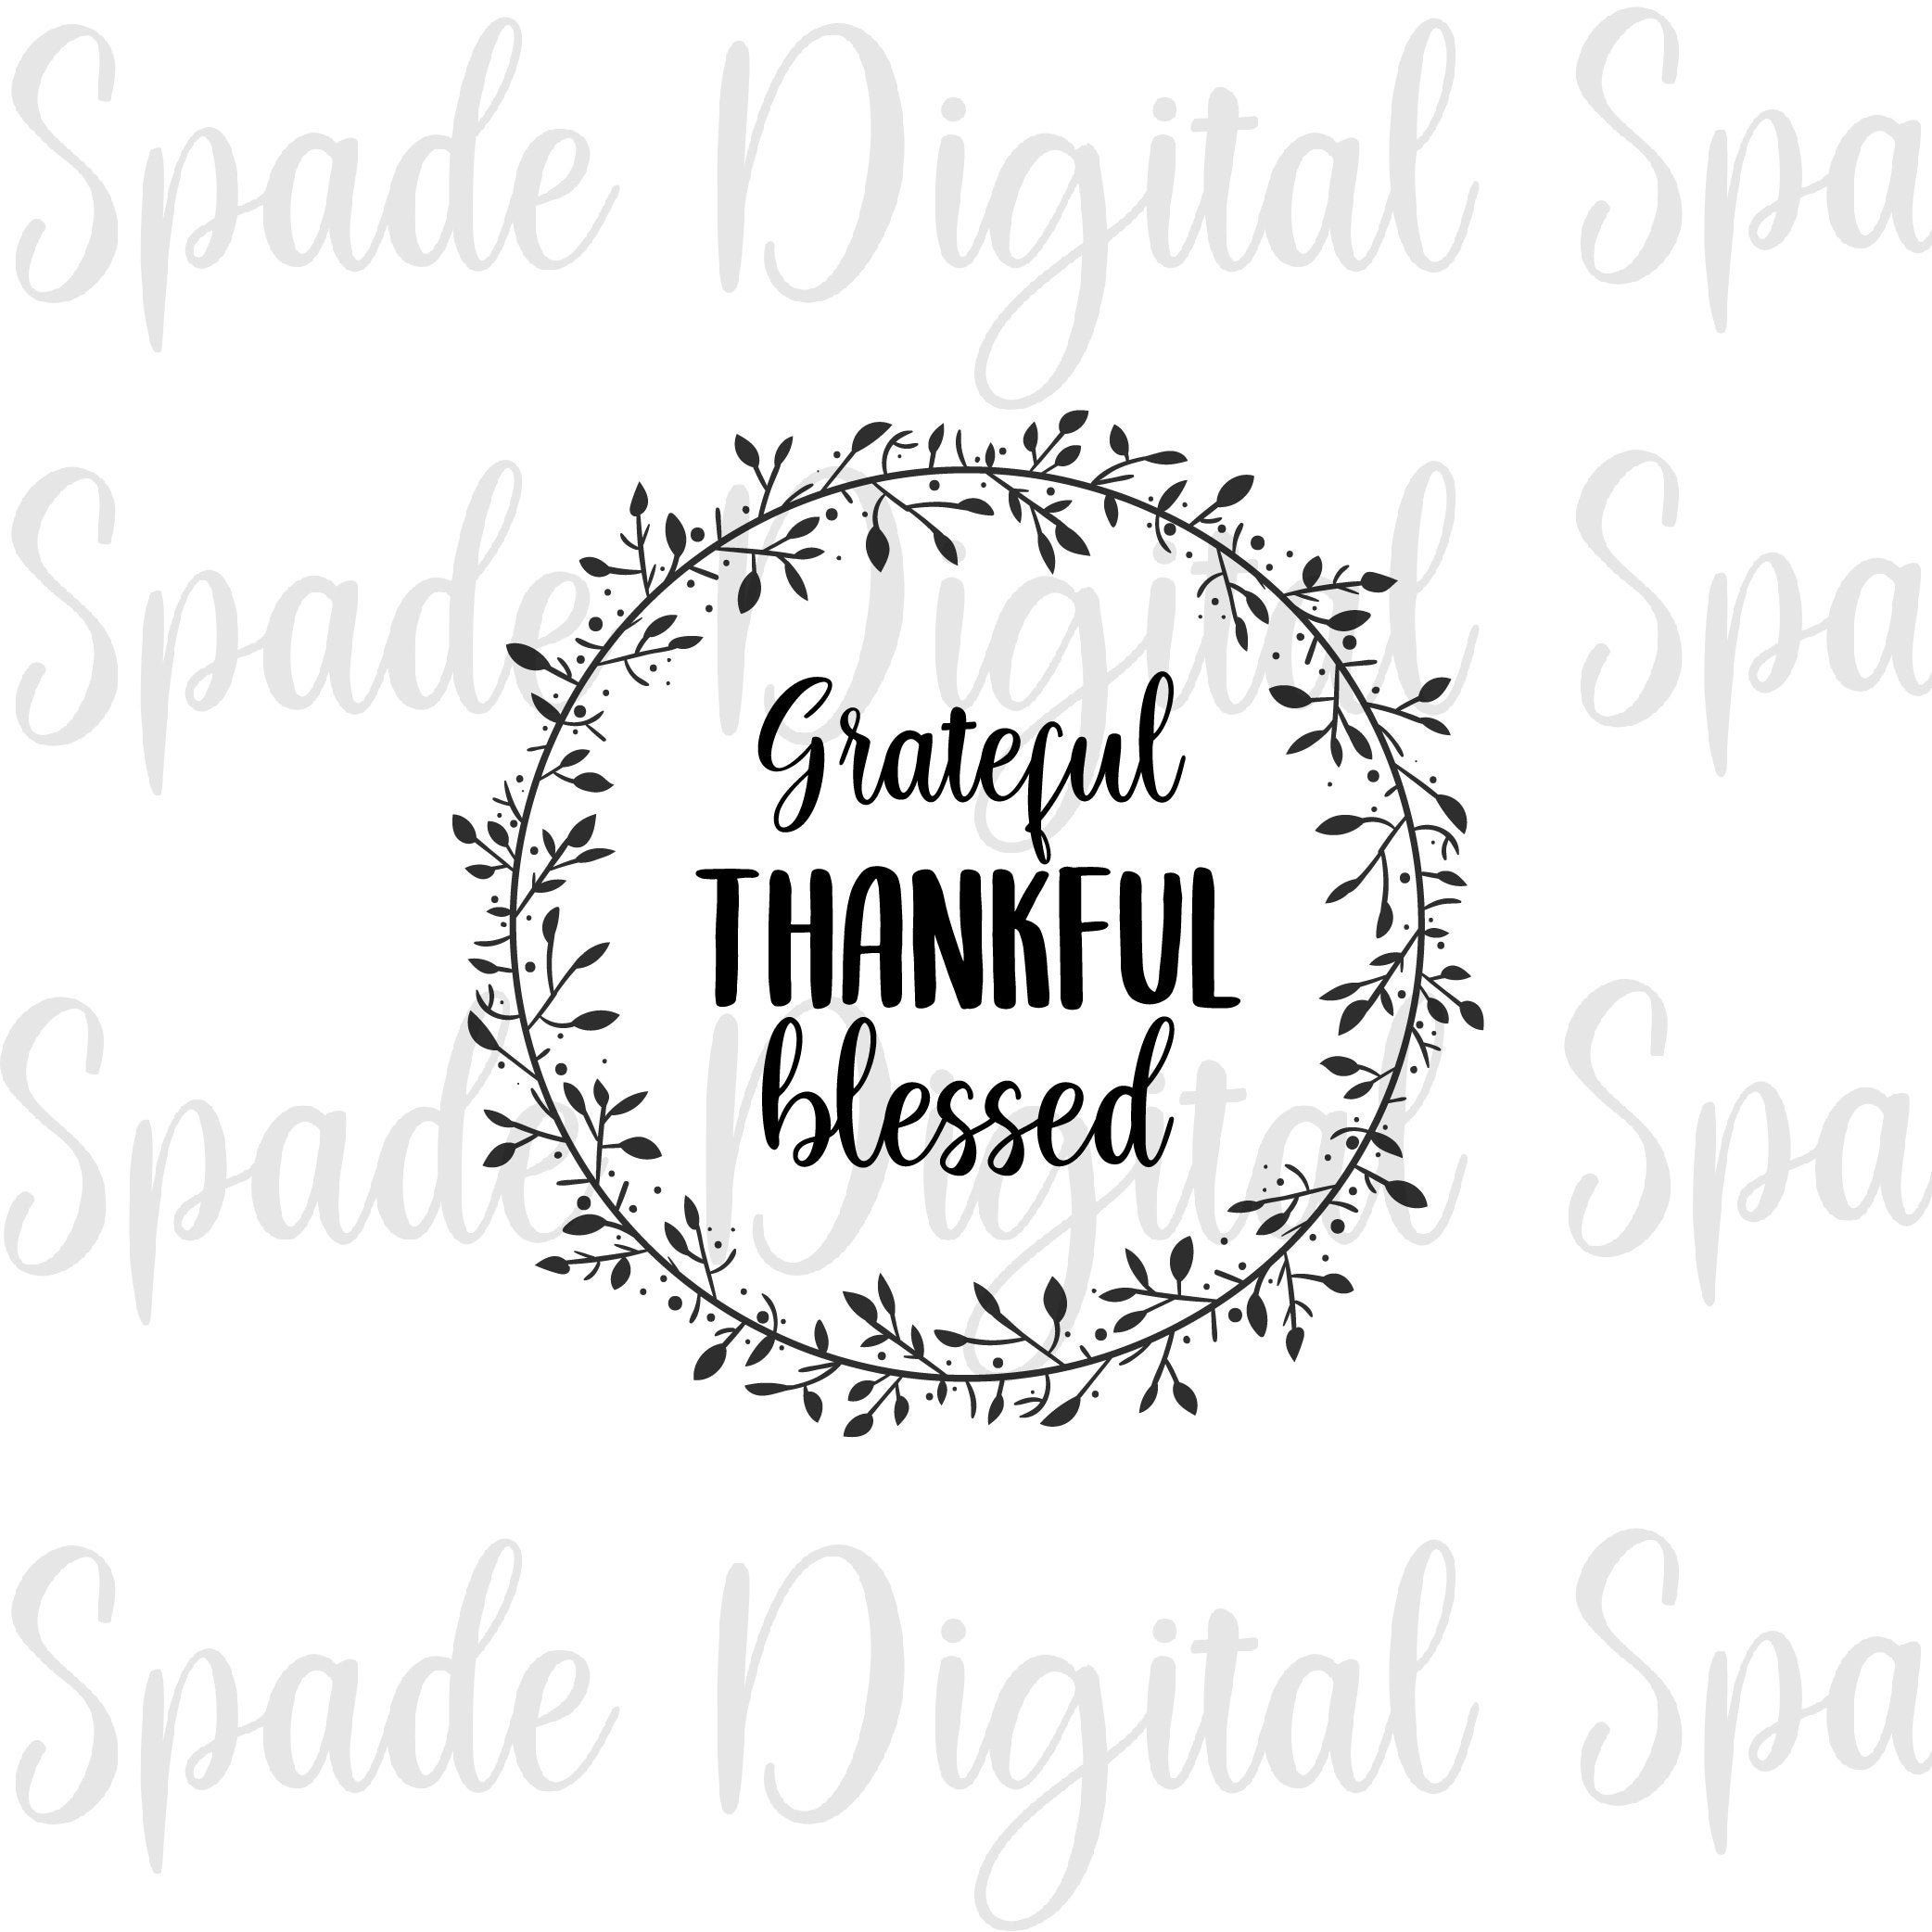 Grateful Thankful Blessed Svg Png Dxf And Jpg Cricut Etsy Thankful And Blessed Grateful Thankful Blessed Thankful